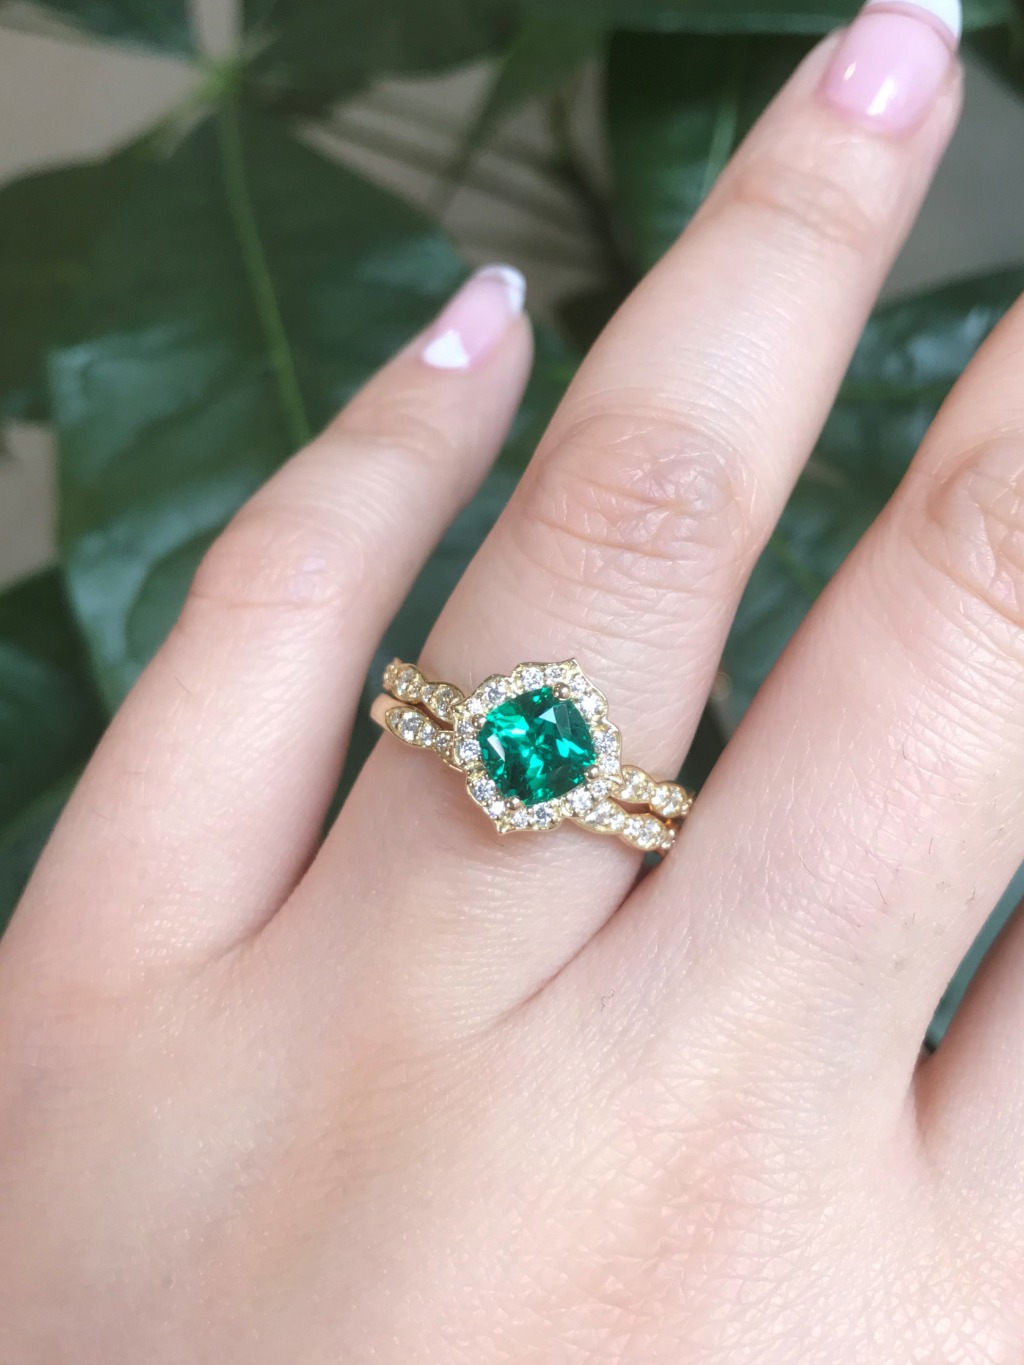 Emerald is the statement gemstone you've been waiting to wear ~ See more from this gorgeous green gemstone in our Emerald collection